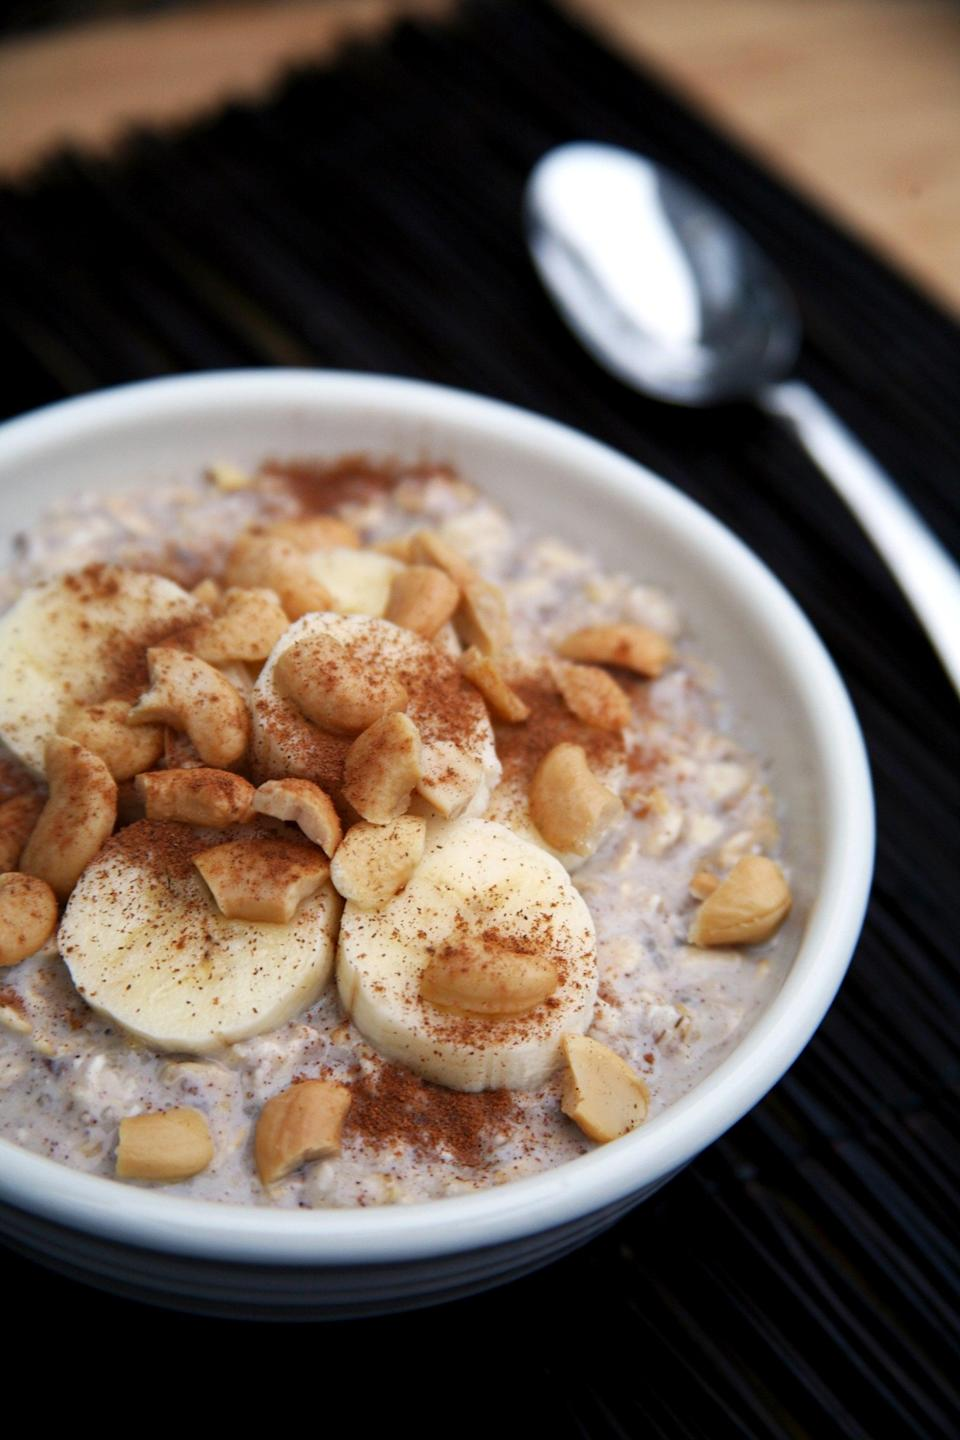 "<p>Skip the maple syrup, brown sugar, or honey and add <a href=""https://www.popsugar.com/fitness/Banana-Cashew-Overnight-Oats-40463726"" class=""link rapid-noclick-resp"" rel=""nofollow noopener"" target=""_blank"" data-ylk=""slk:mashed banana to your oatmeal"">mashed banana to your oatmeal</a> to add natural sweetness plus a little extra potassium. </p>"